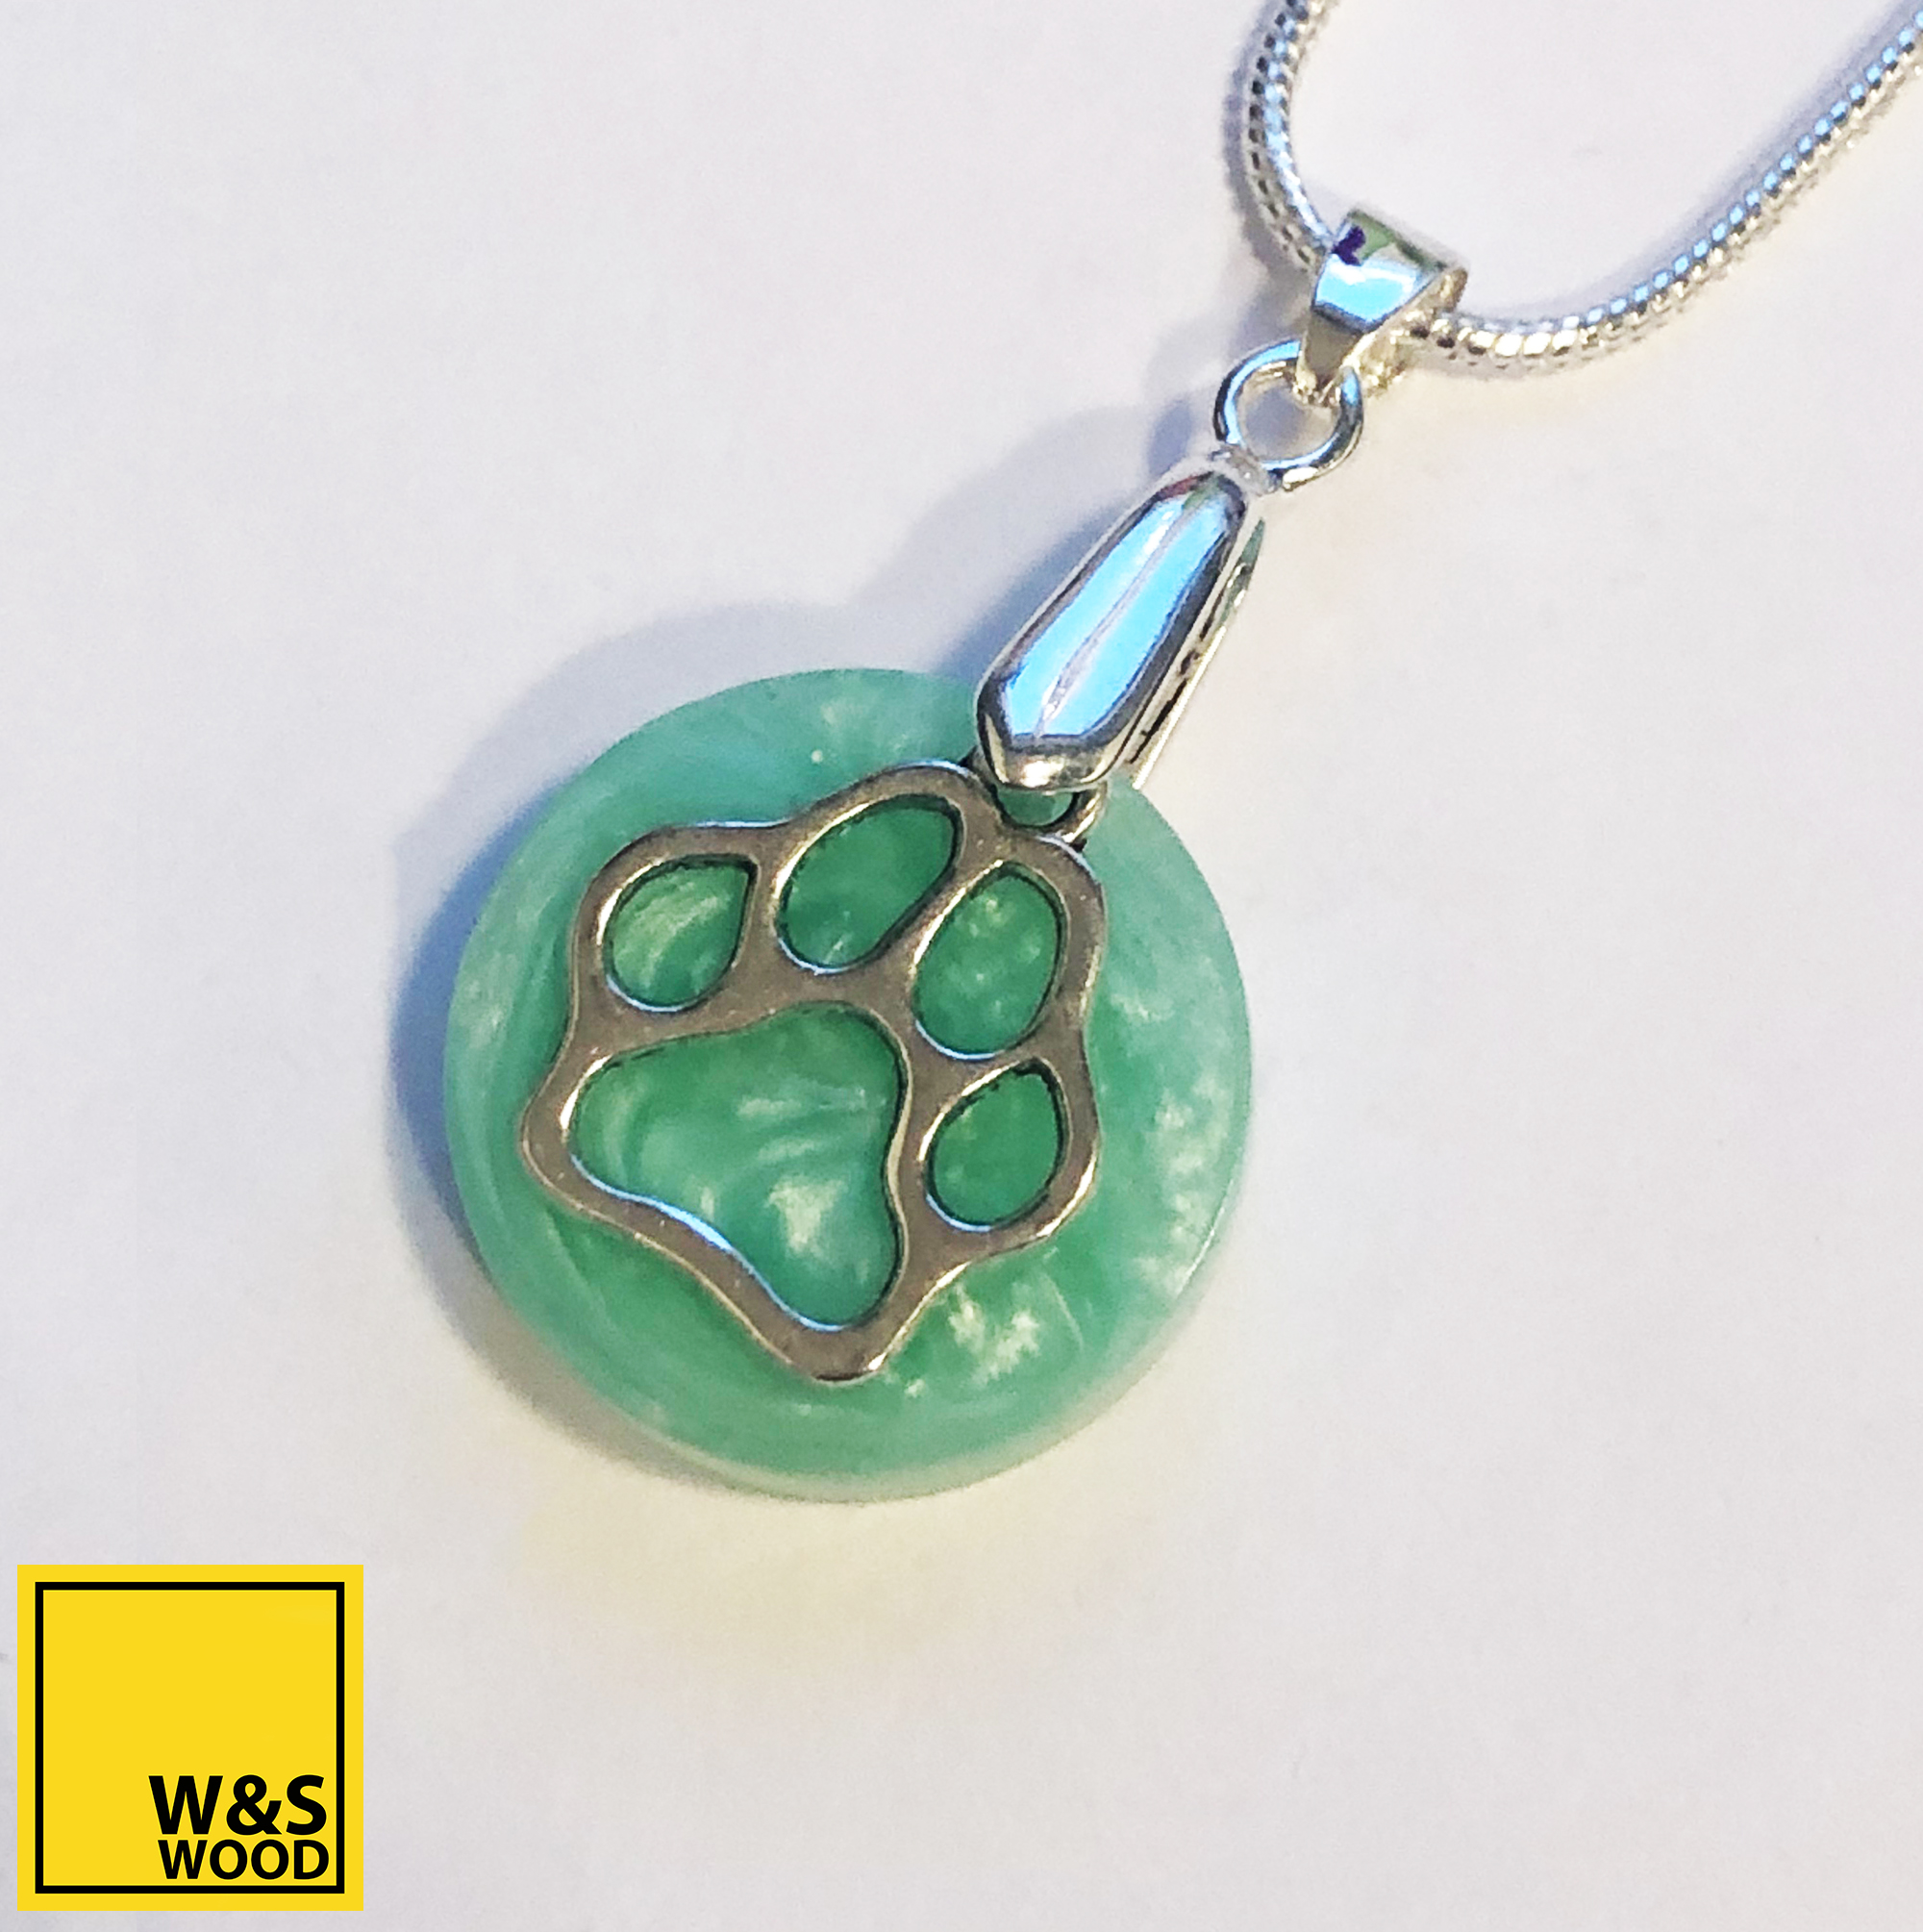 March round with paw print